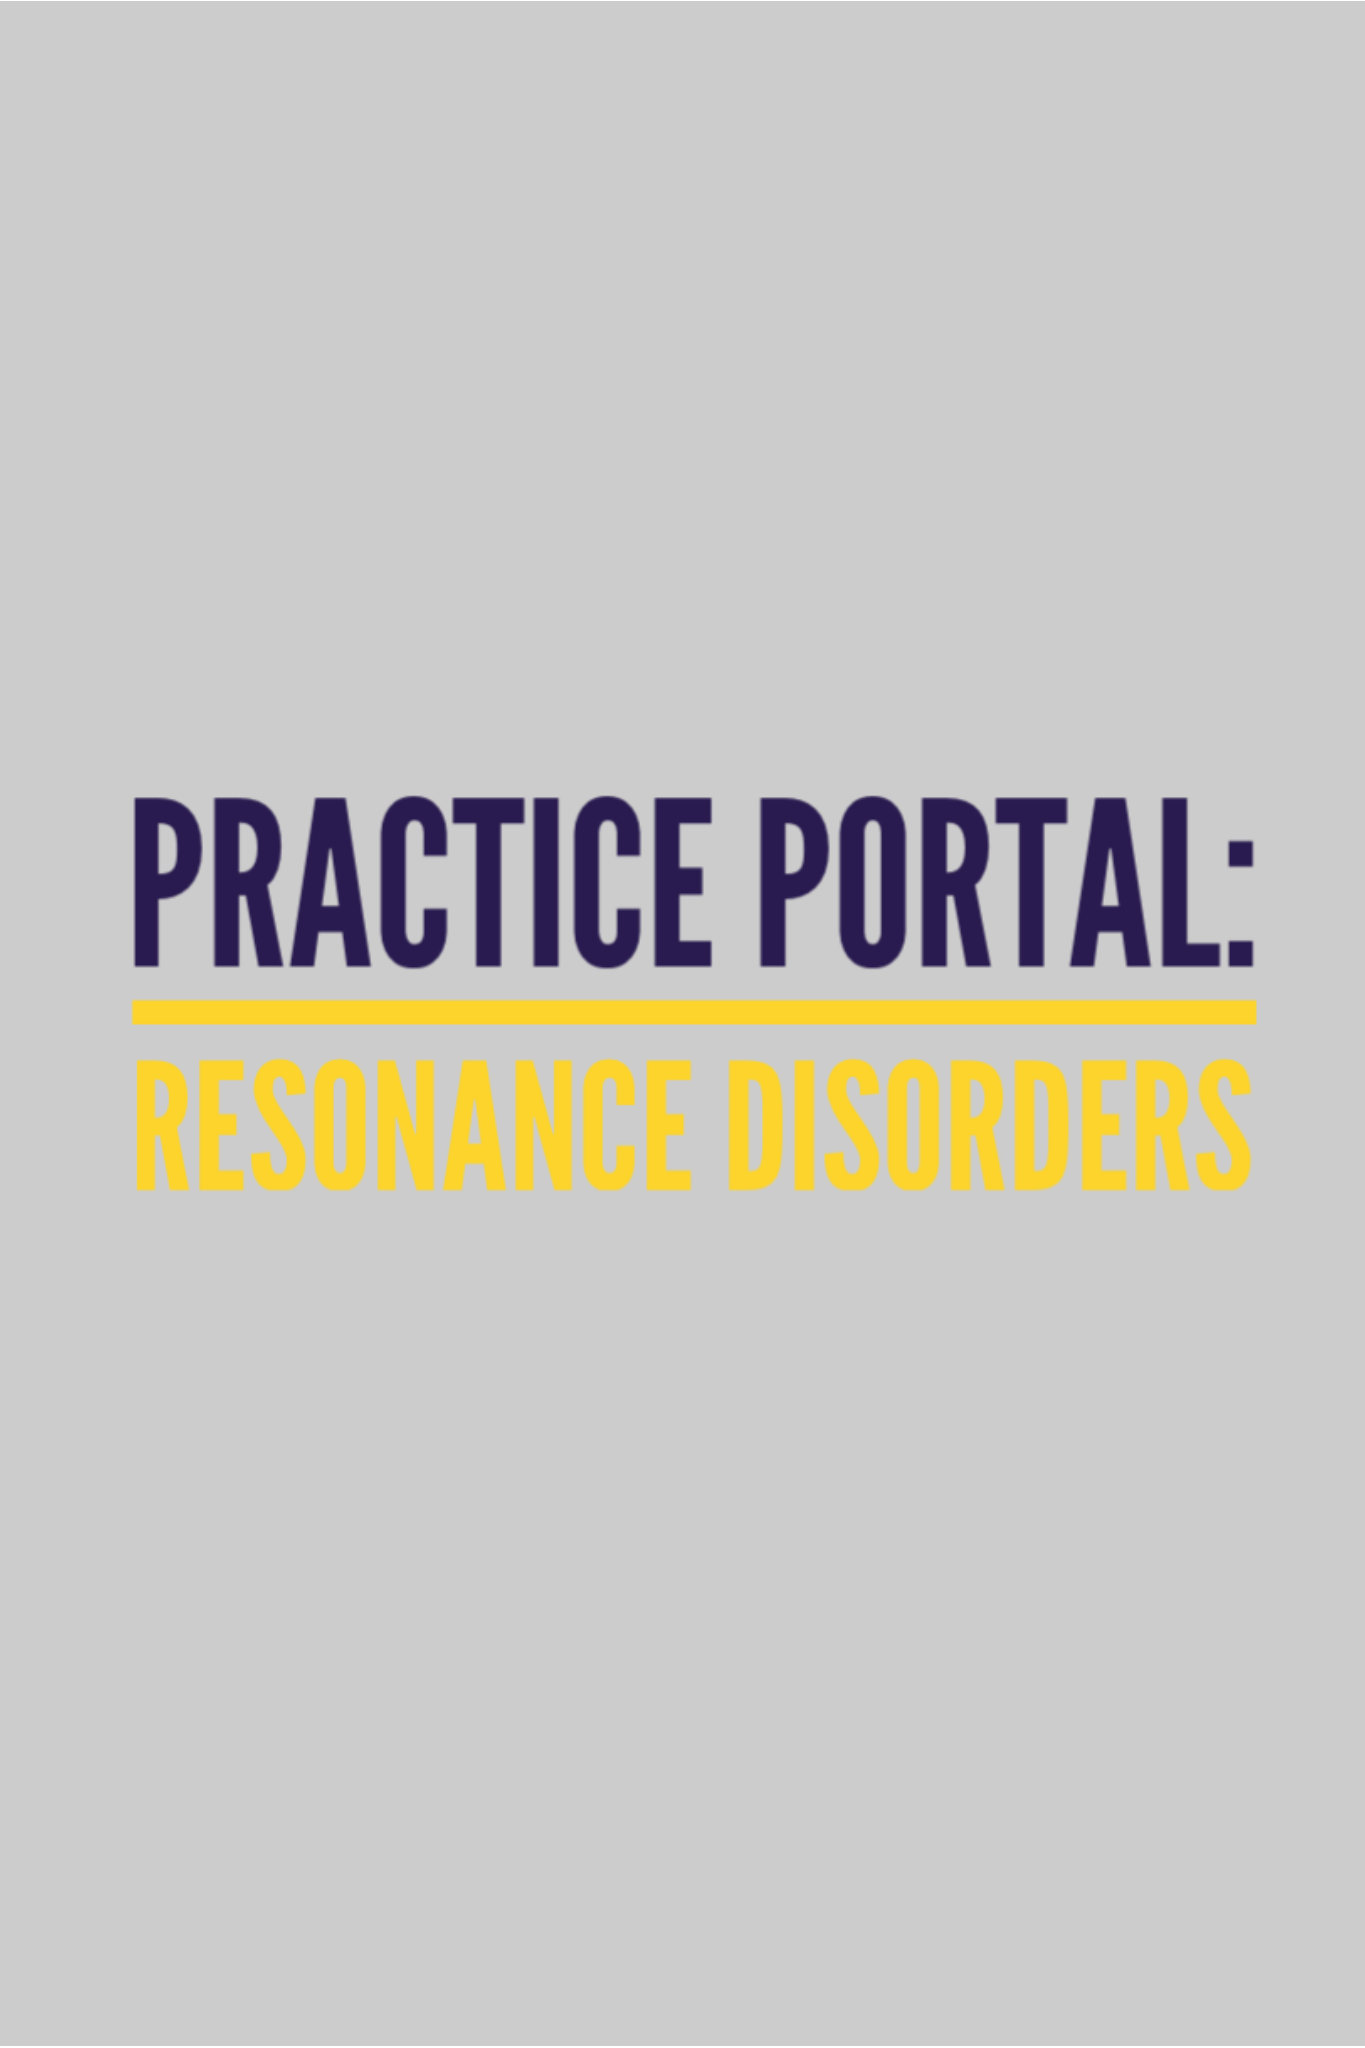 Resonance Disorders Curated And Peer Reviewed Content On